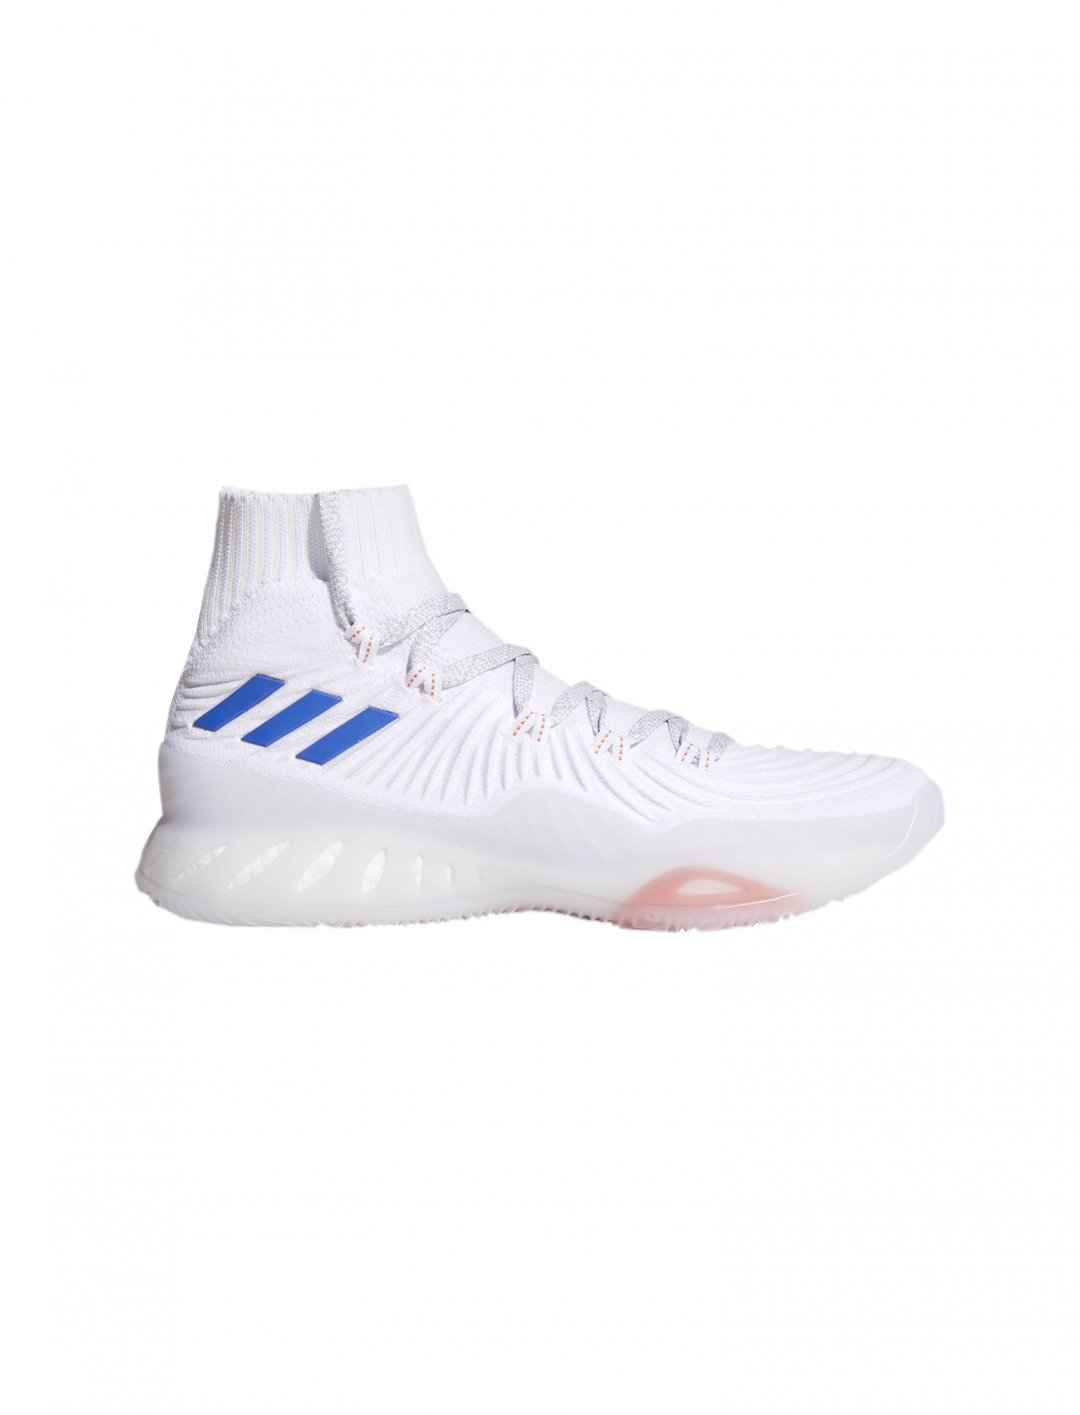 "Adidas Crazy Trainers {""id"":12,""product_section_id"":1,""name"":""Shoes"",""order"":12} Adidas"